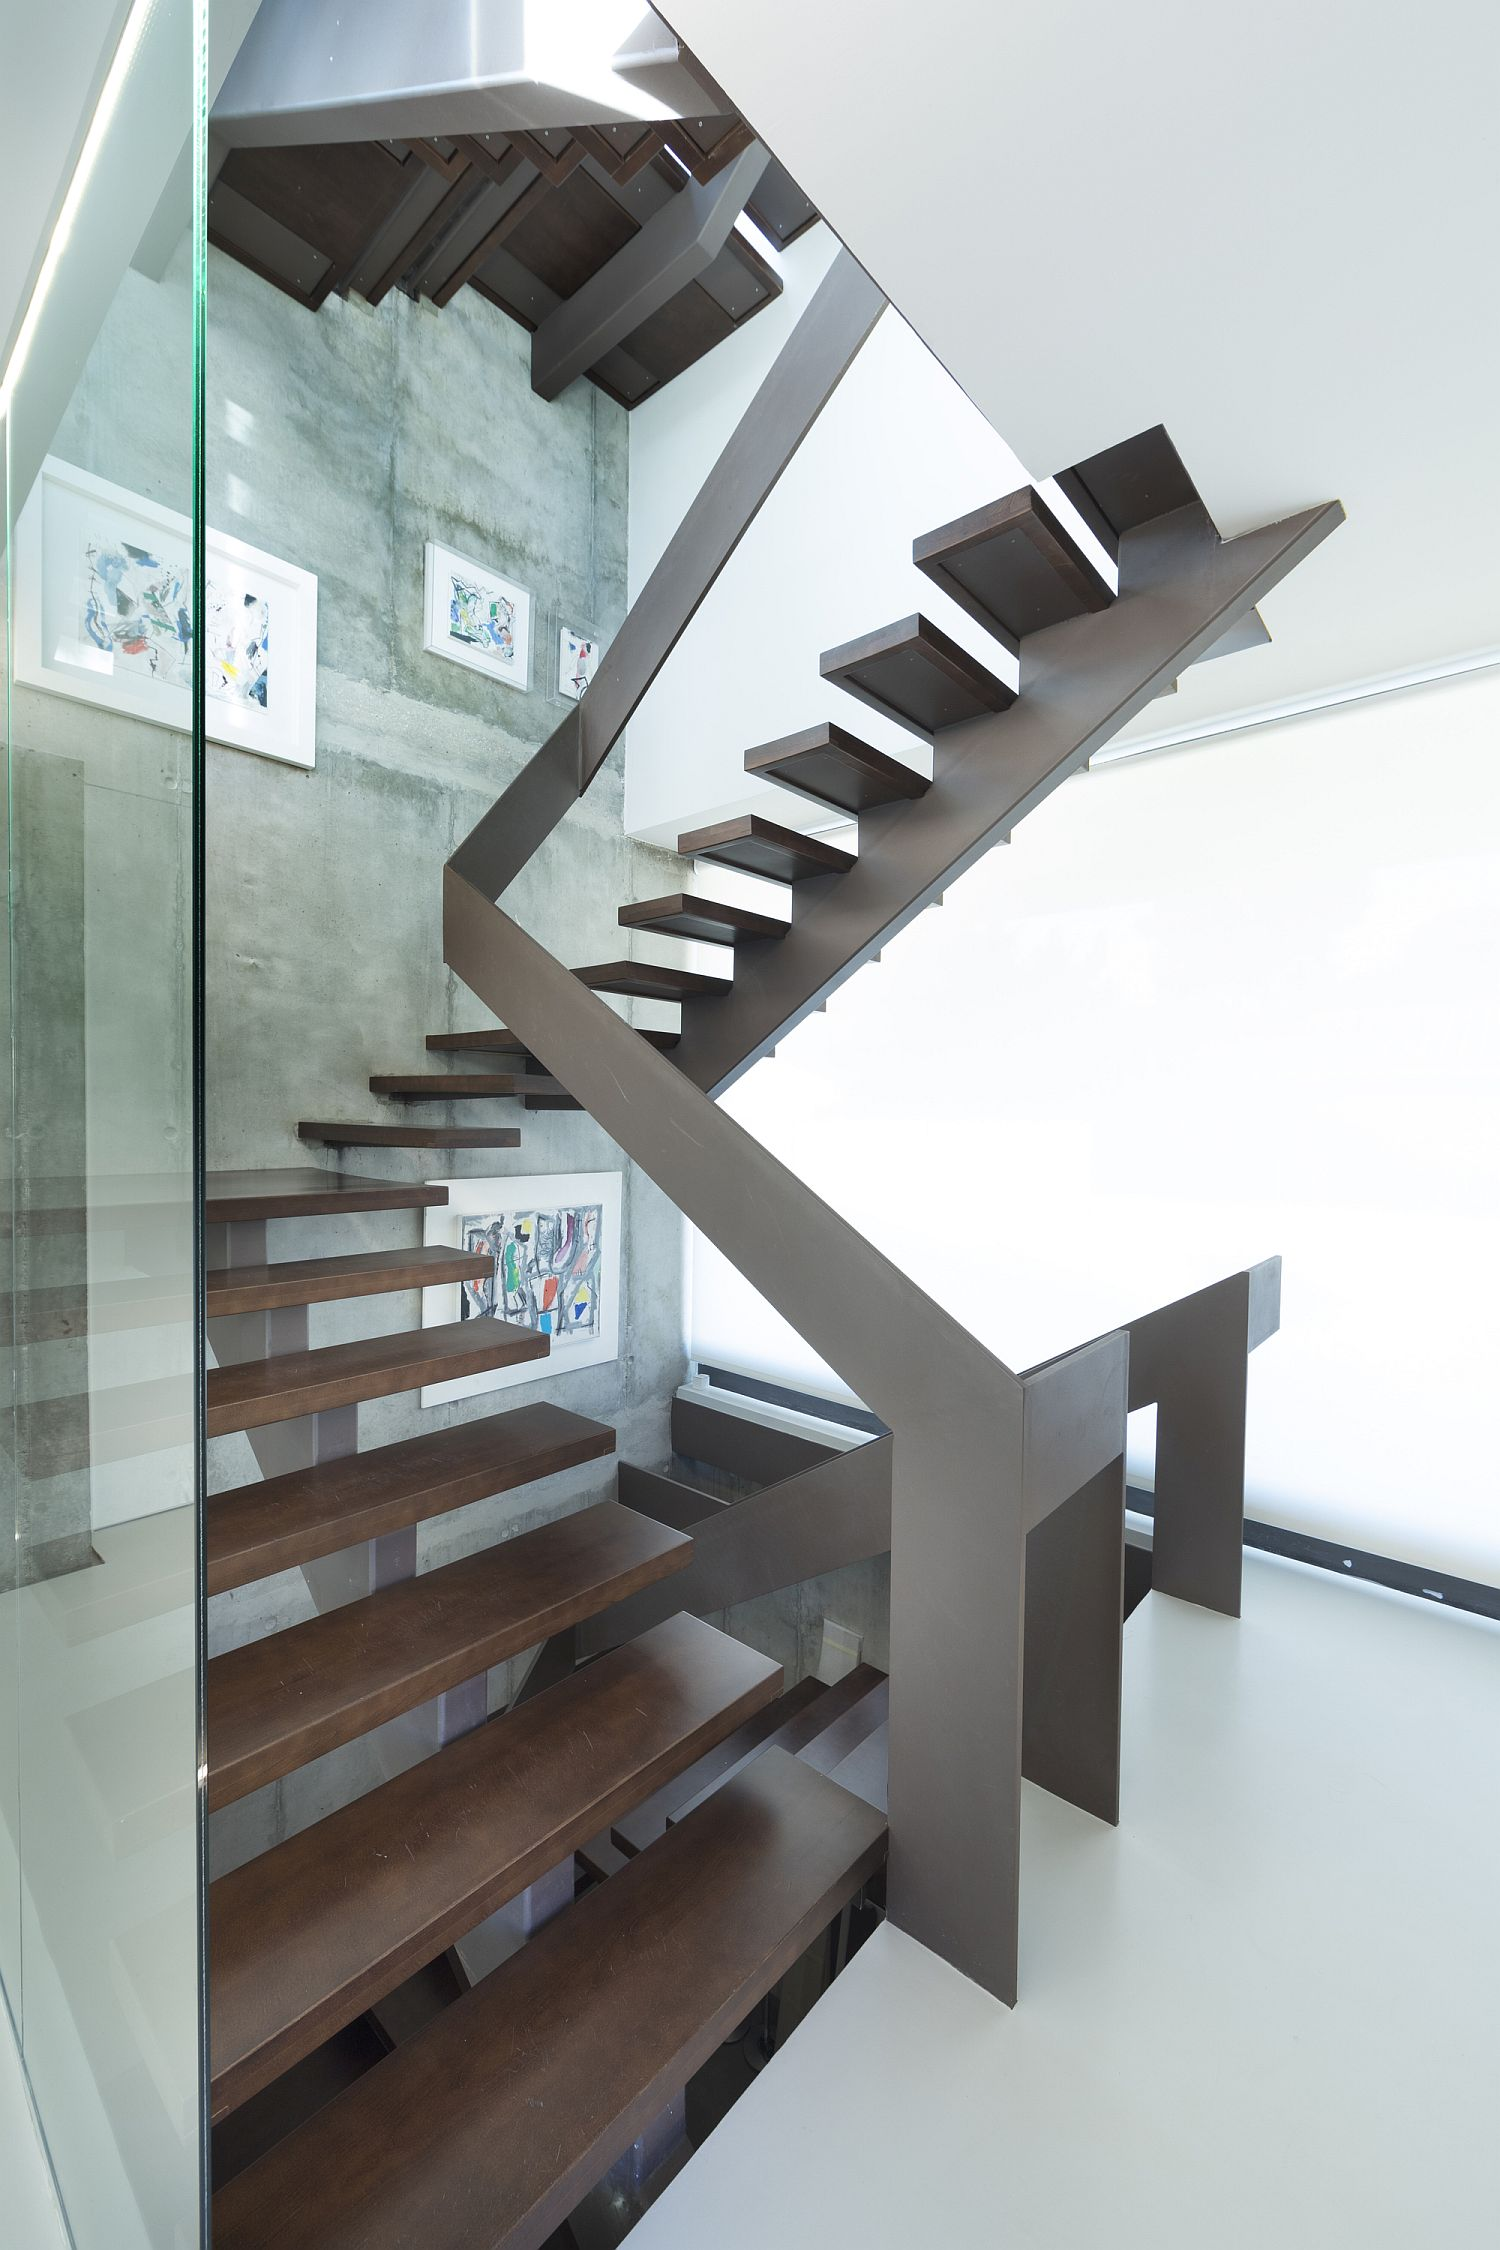 Smart stairway for the multi-level Aussie home